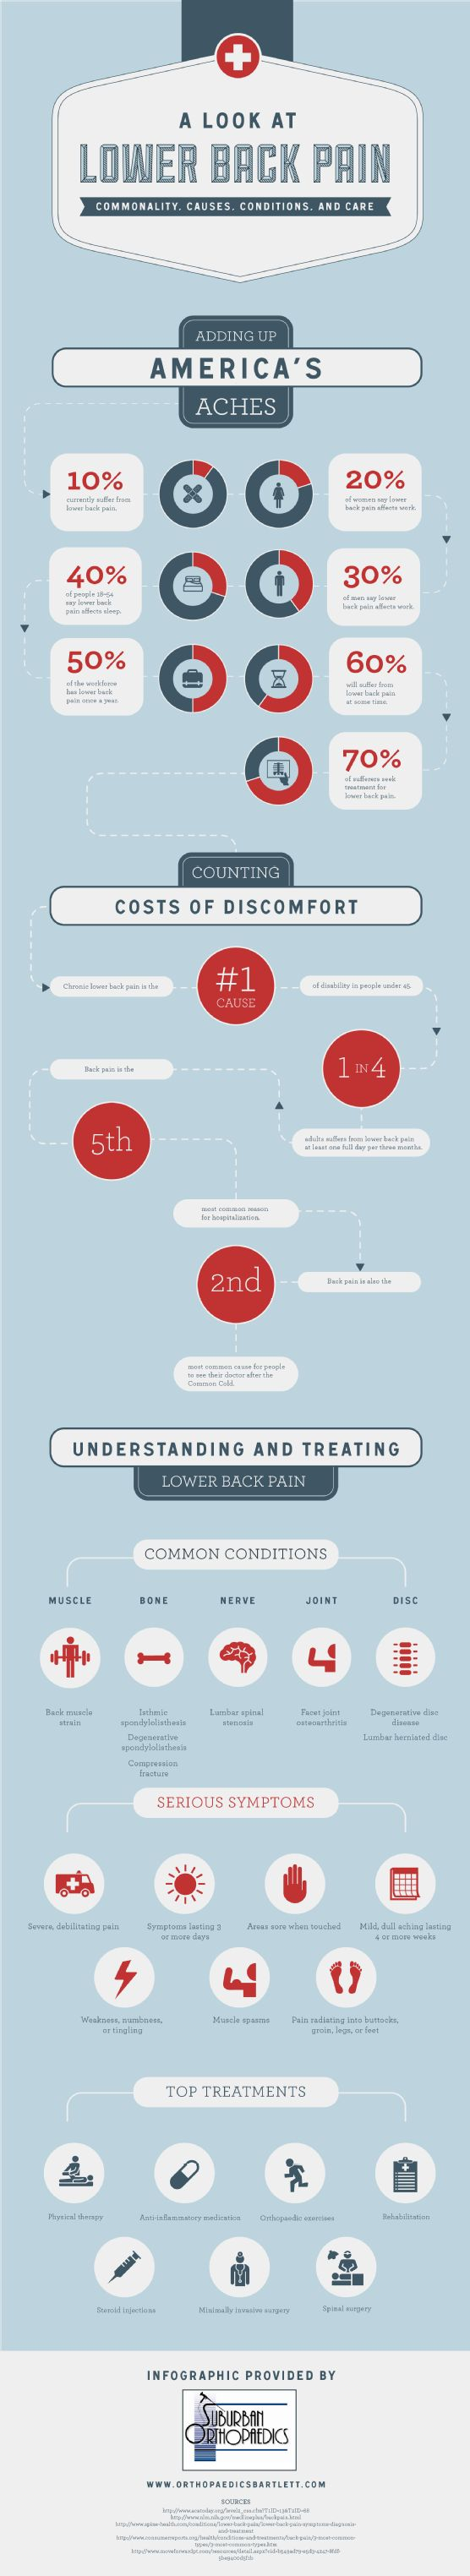 People under the age of 45 are most likely to be disabled by chronic back pain. If you still think your back pain is no big deal, then it may be time to reconsider and see an orthopaedic specialist! Learn more by checking out this helpful infographic: http://www.orthopaedicsbartlett.com/619597/2013/01/02/a-look-at-lower-back-pain-commonality-causes-conditions-and-care-infographic.html